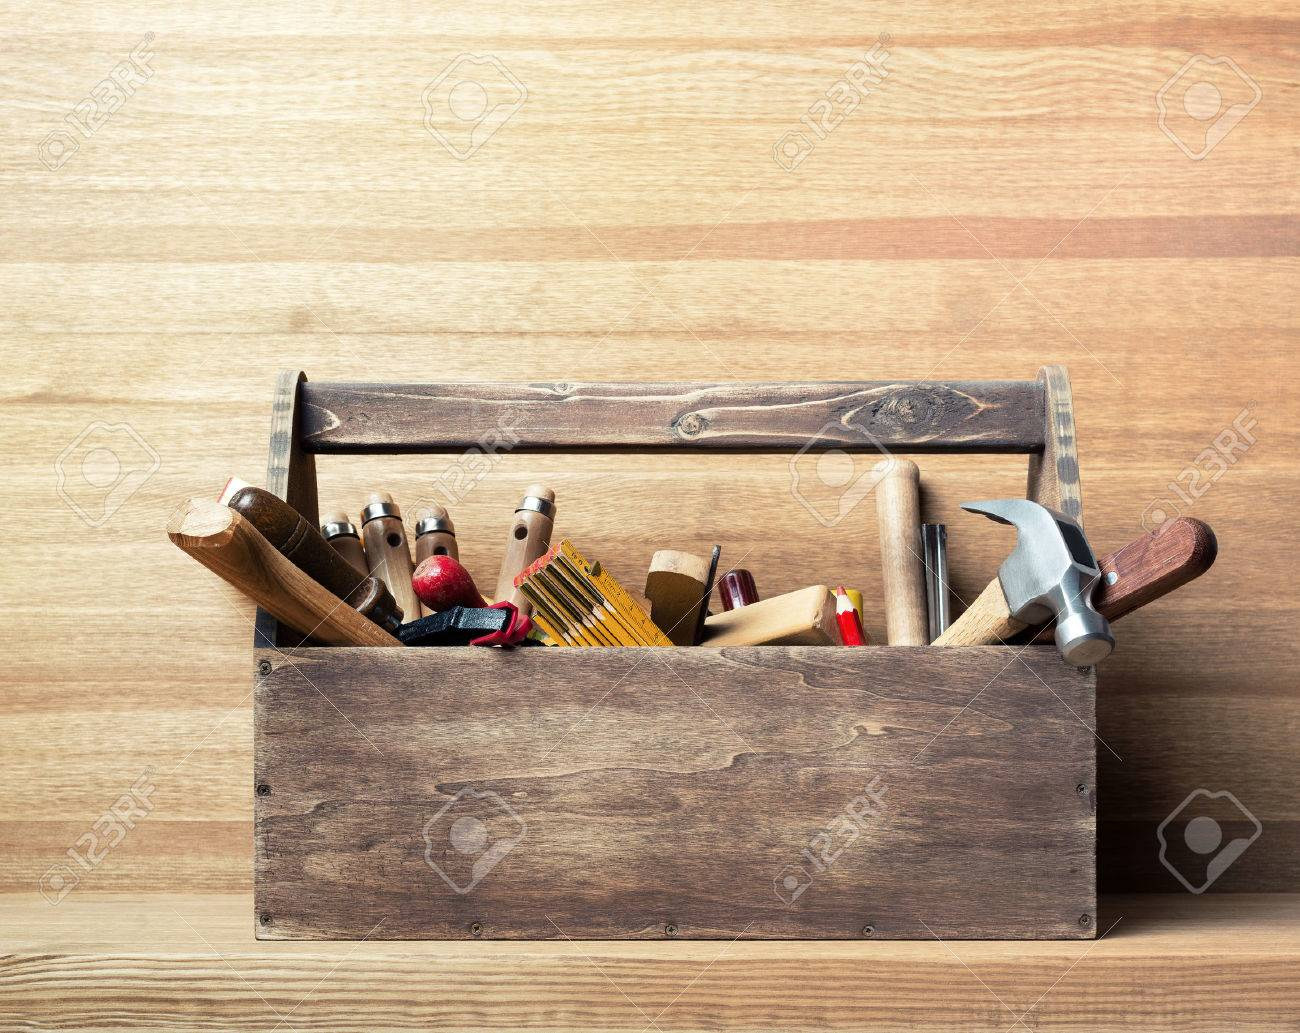 Wooden toolbox on the table Stock Photo - 44384955